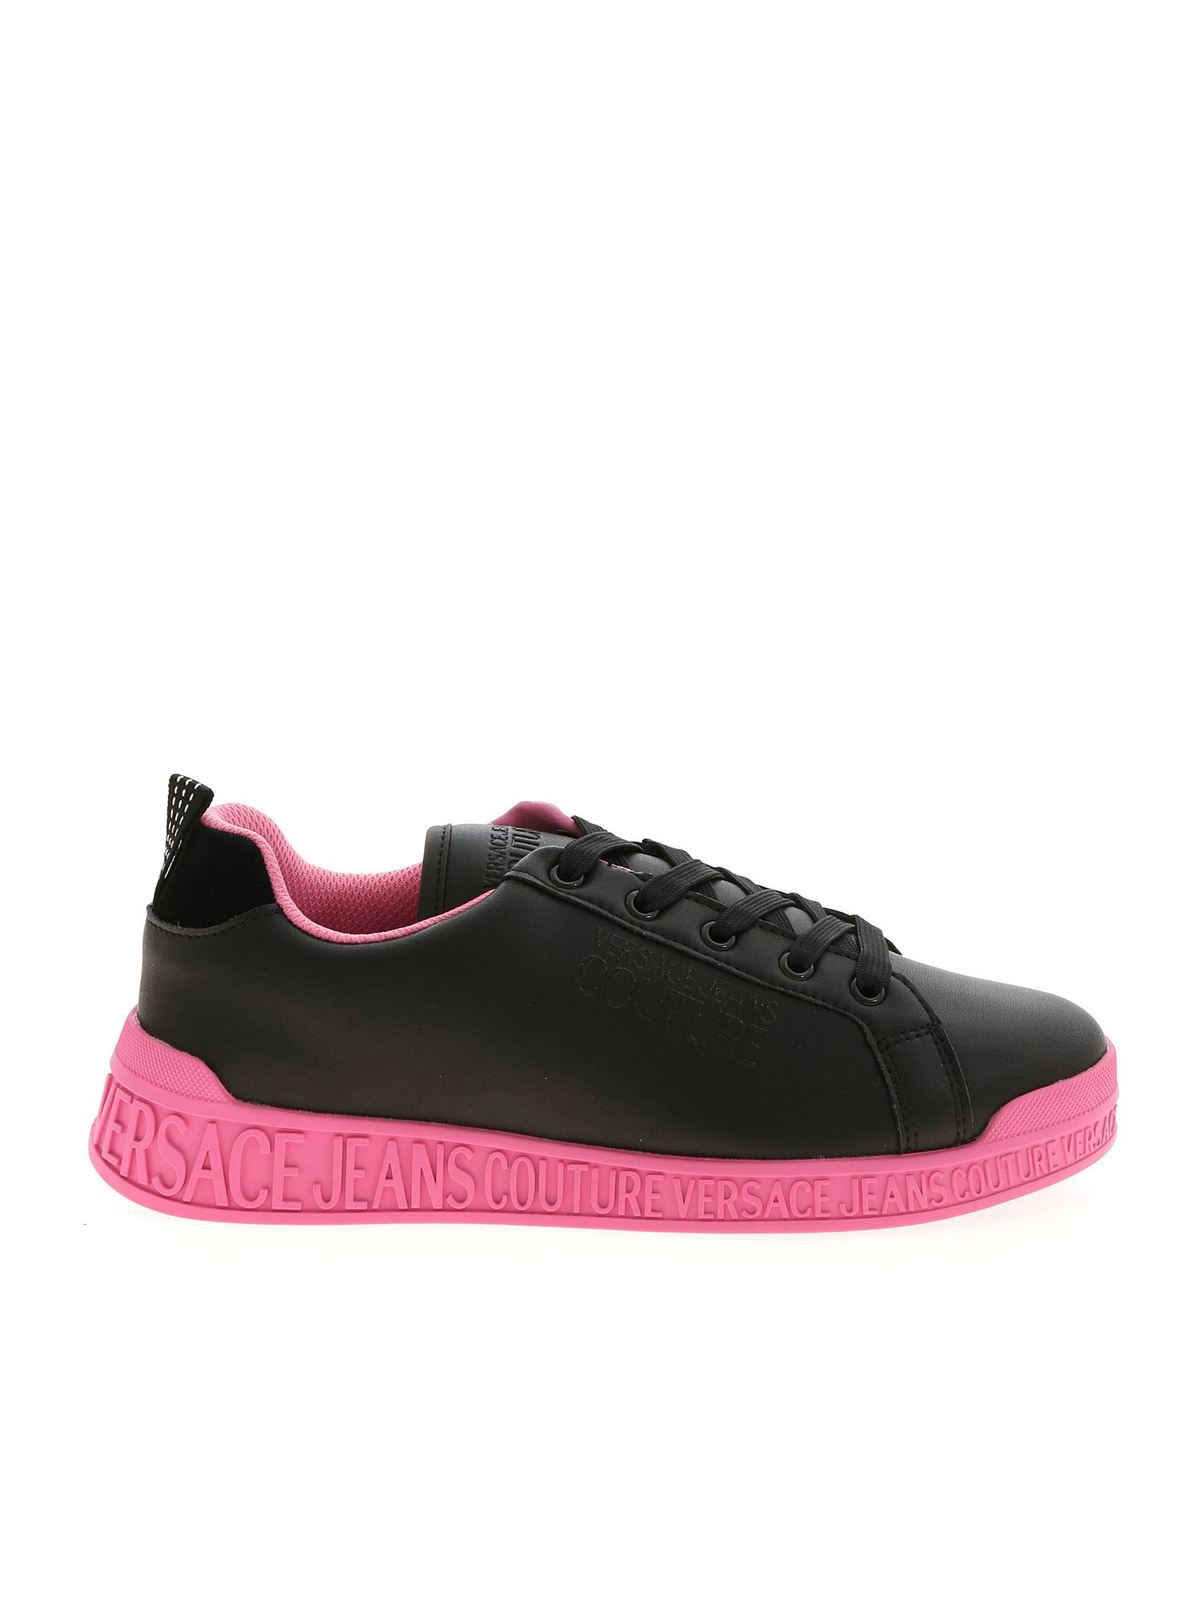 Versace Jeans Couture LOGO DETAIL SNEAKERS IN BLACK